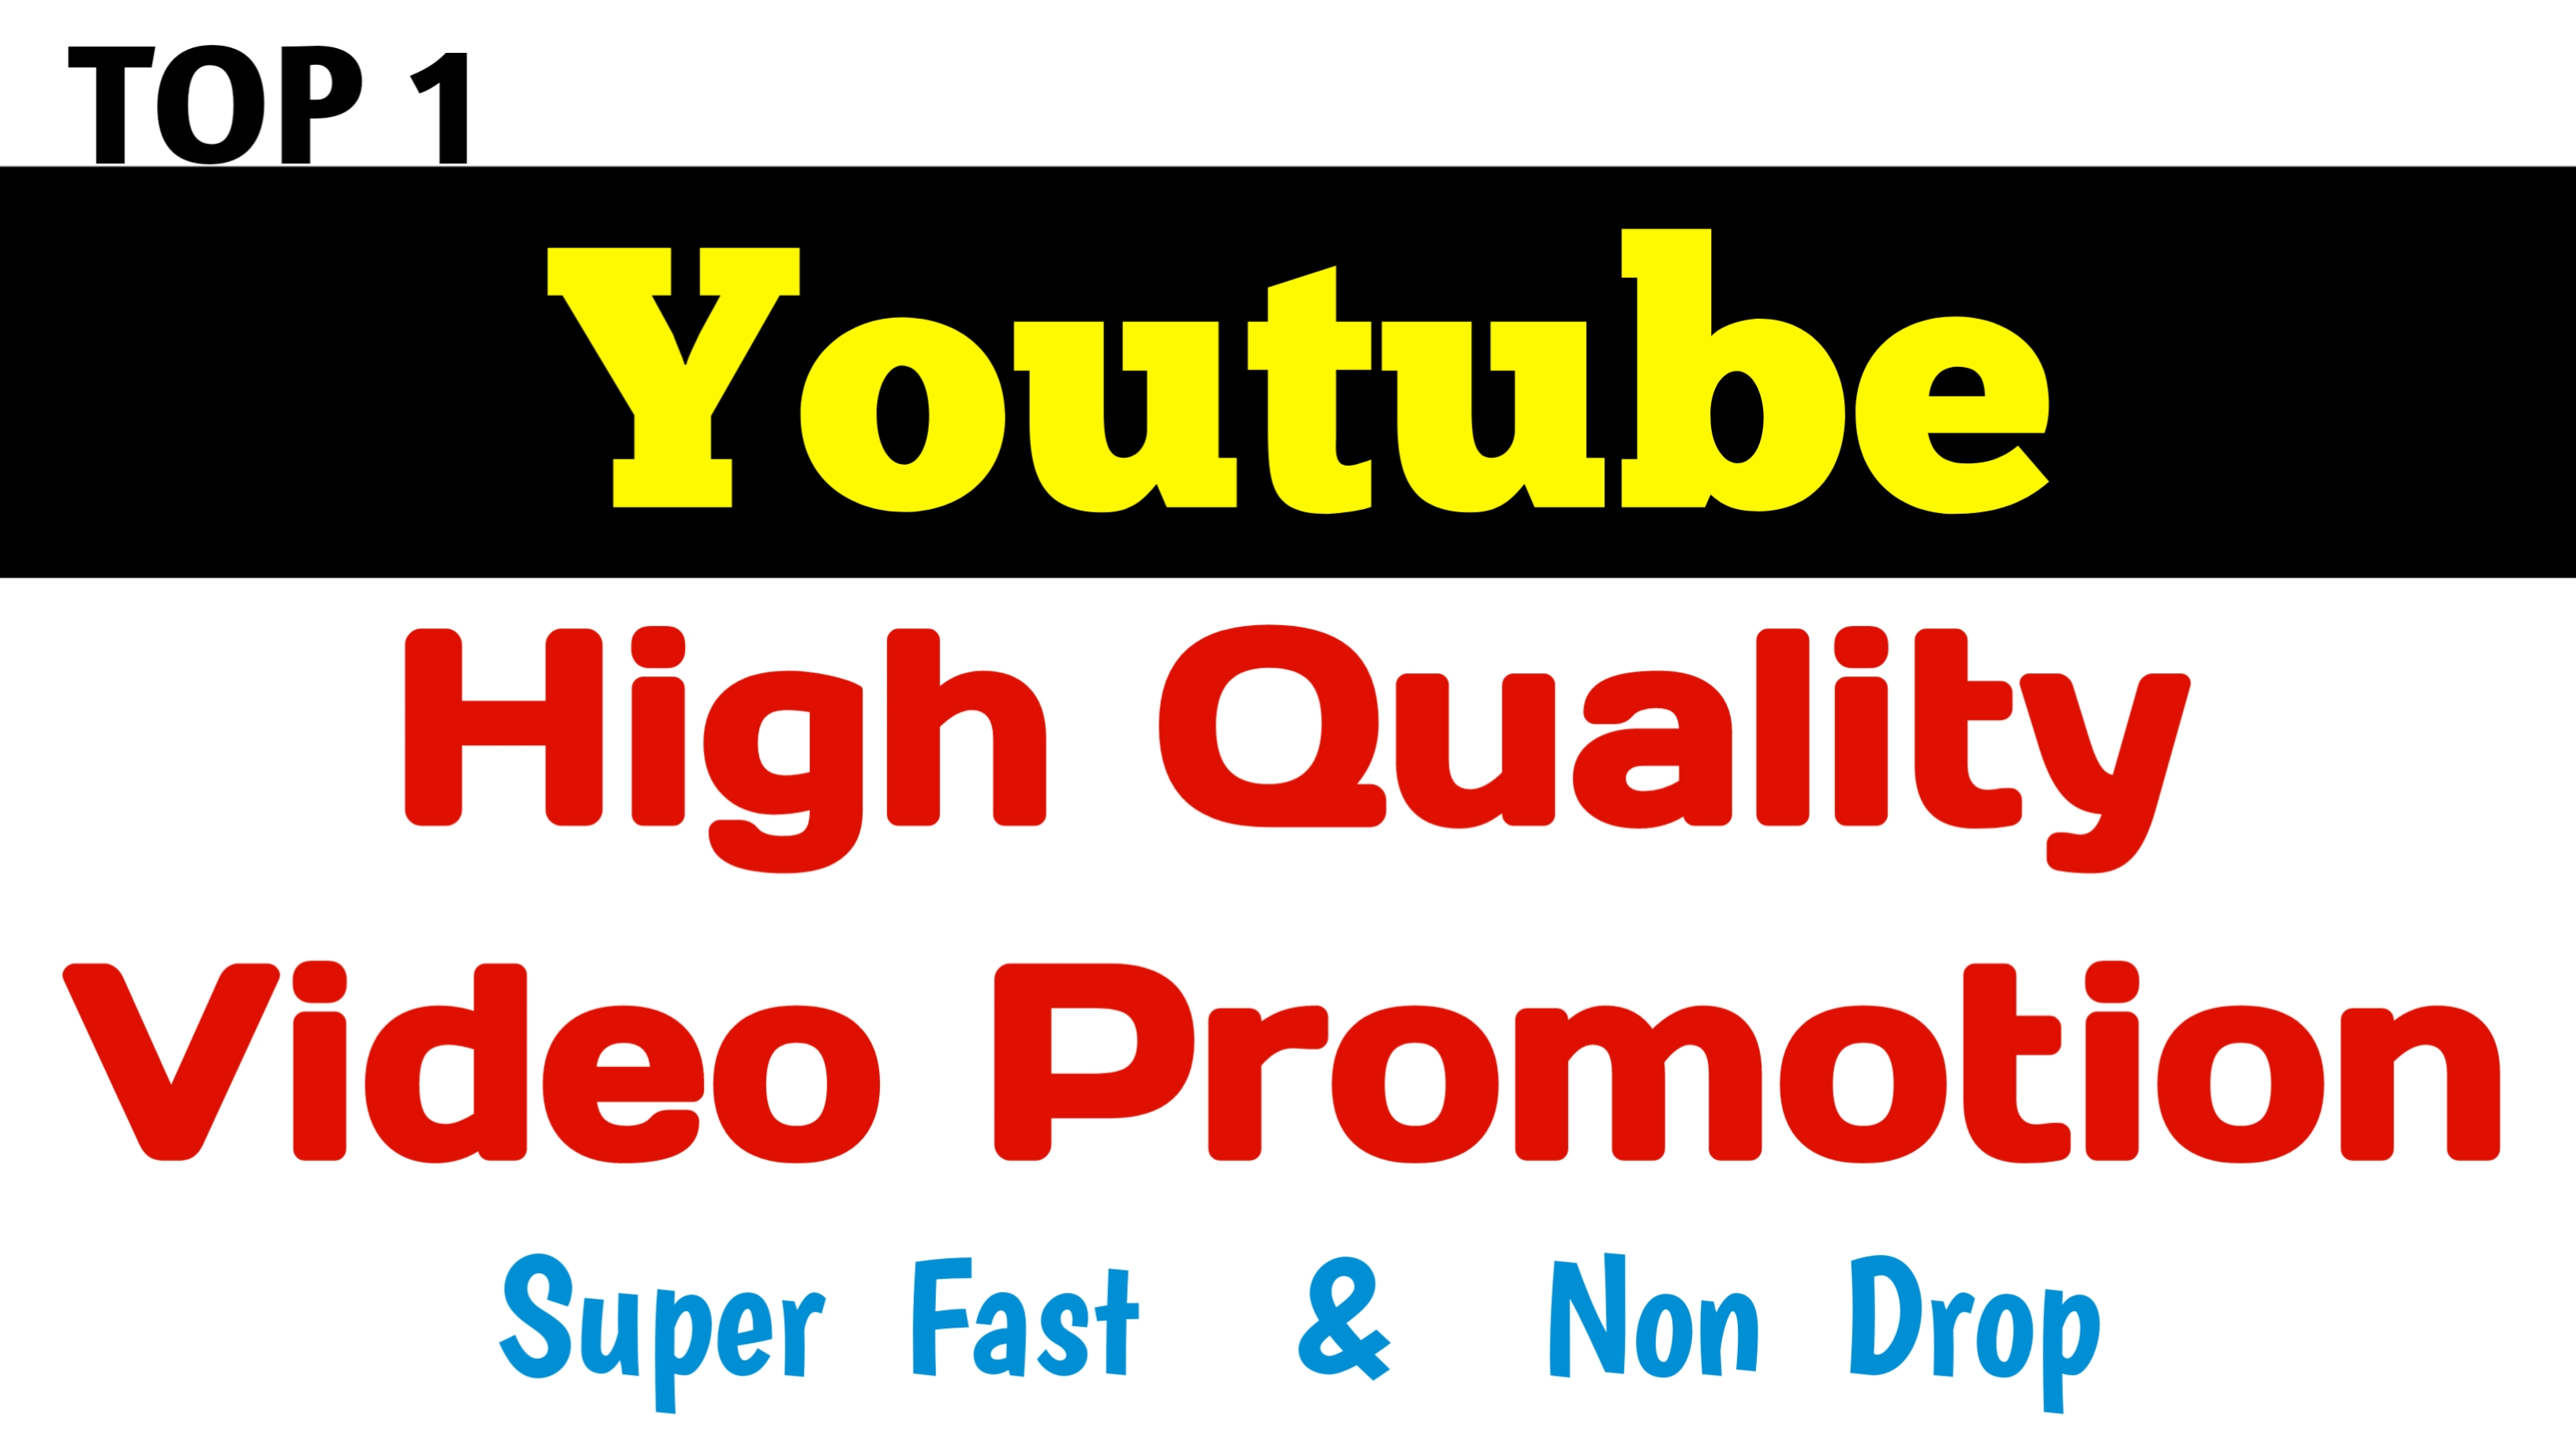 YouTube Video Promotion With High Quality Social Traffic